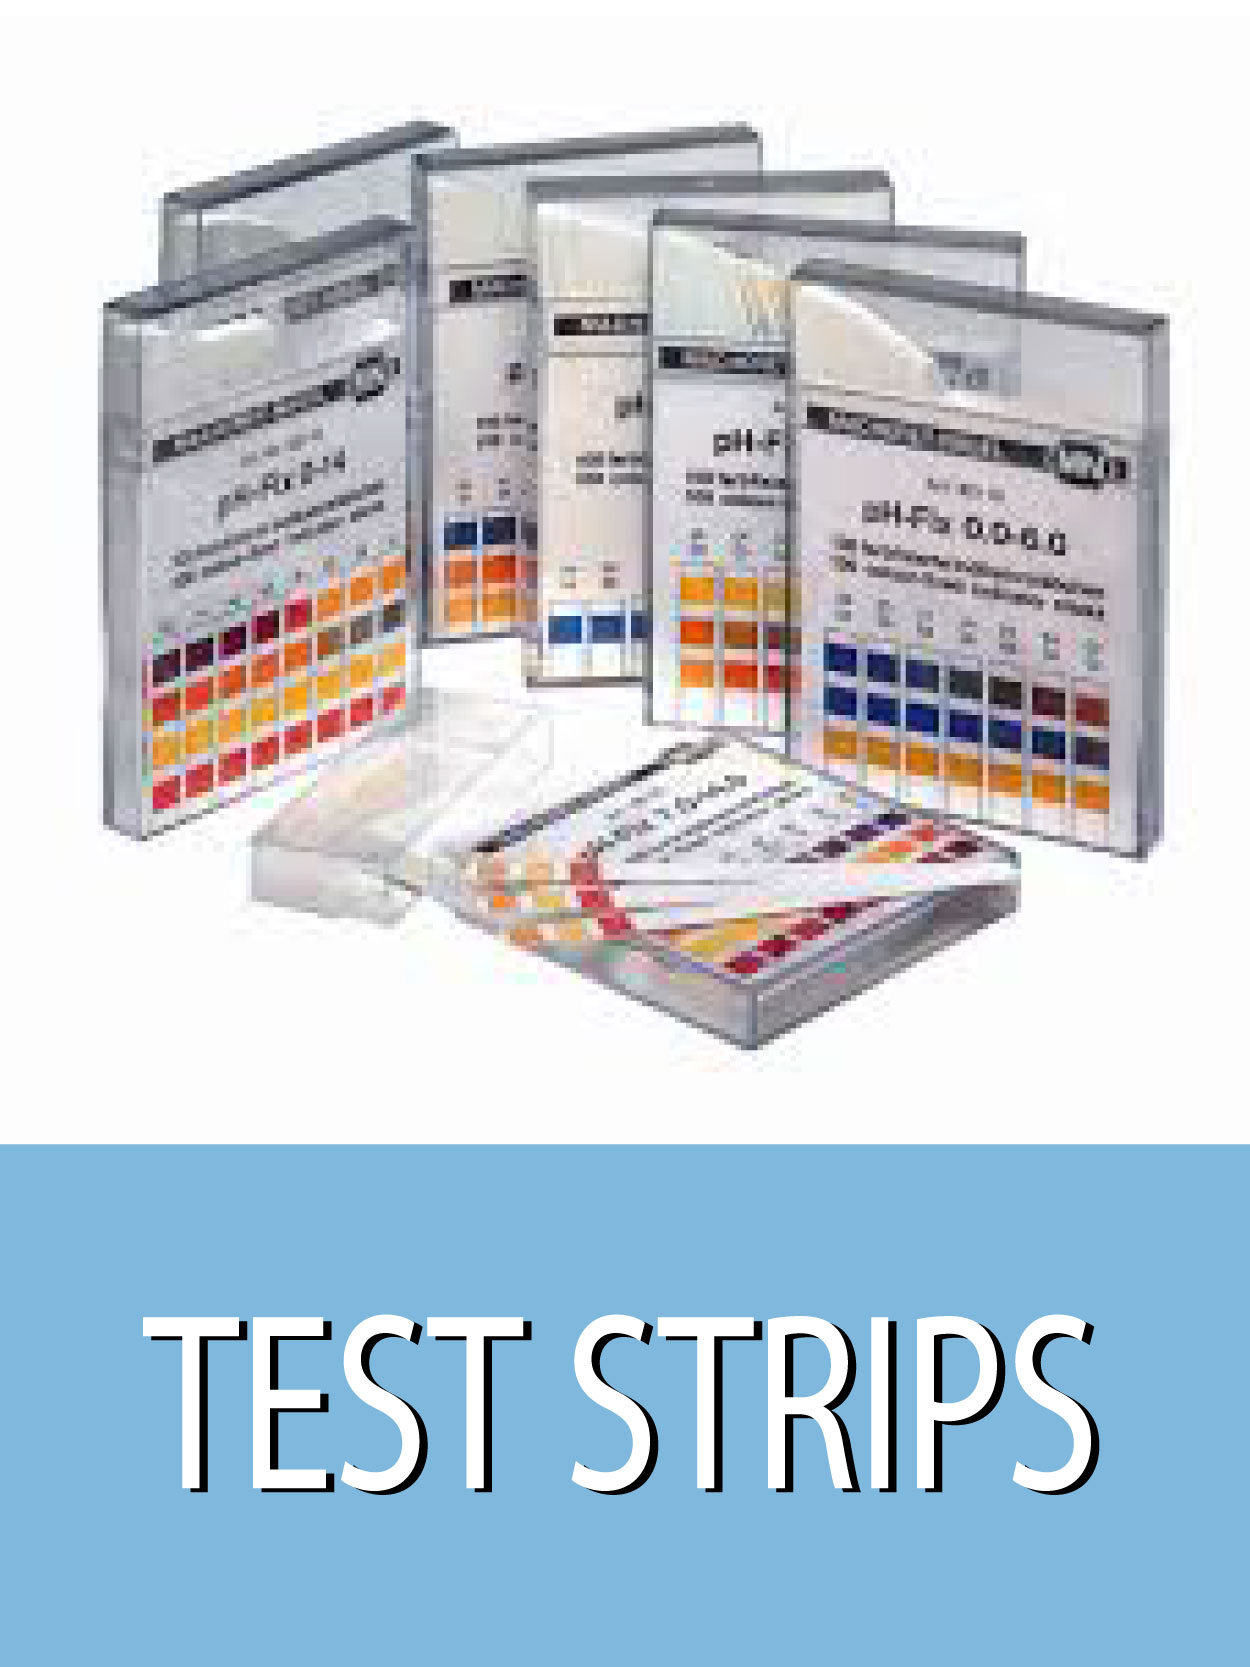 brewery-test-strips